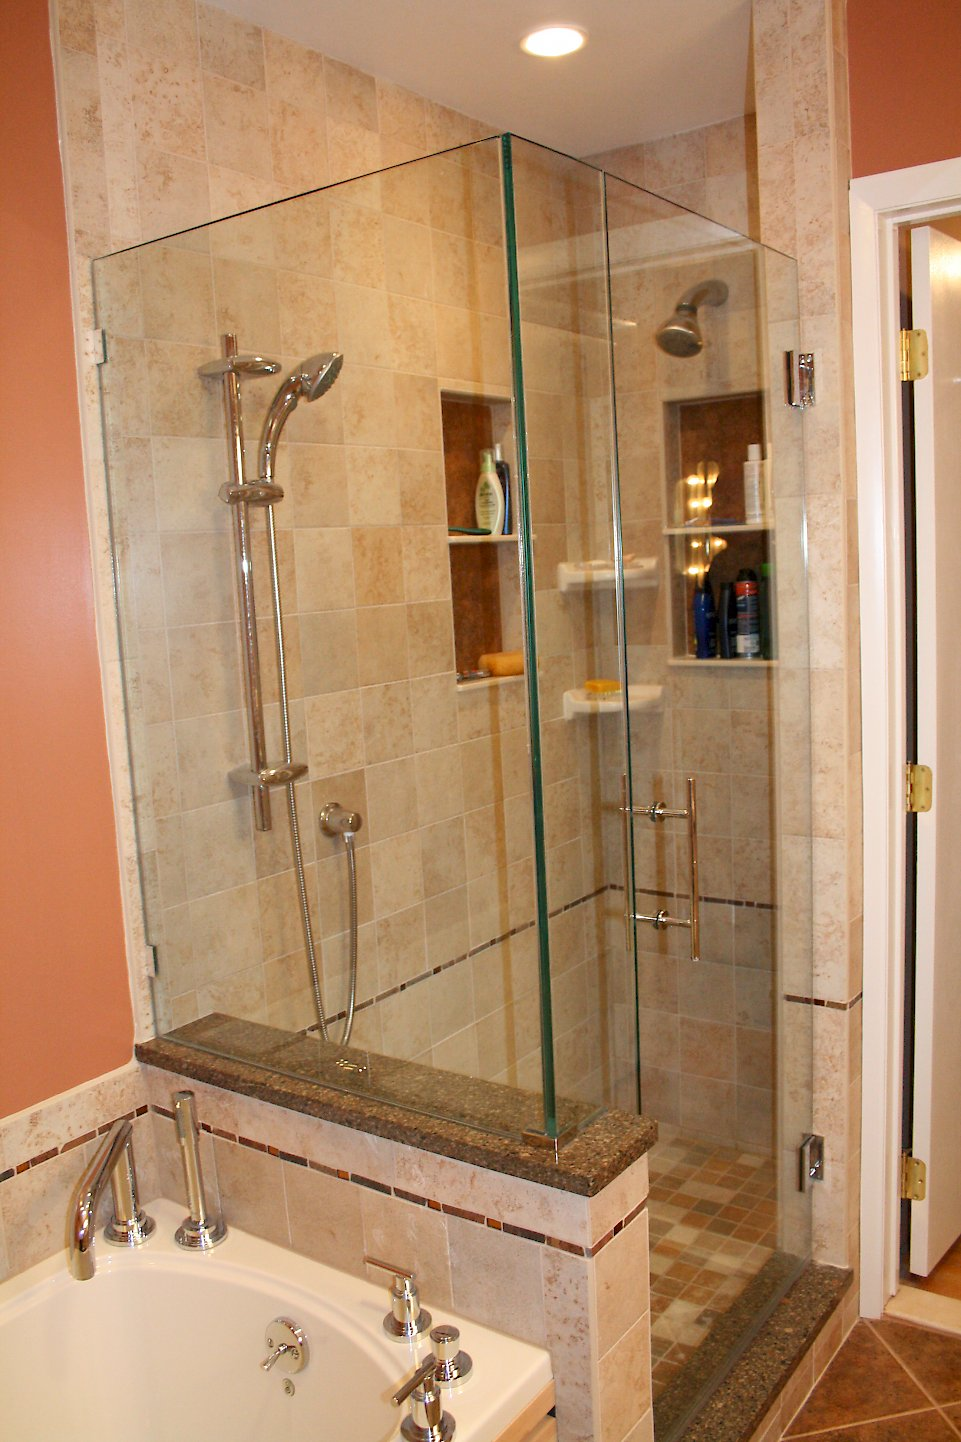 Custom glass frameless shower doors.